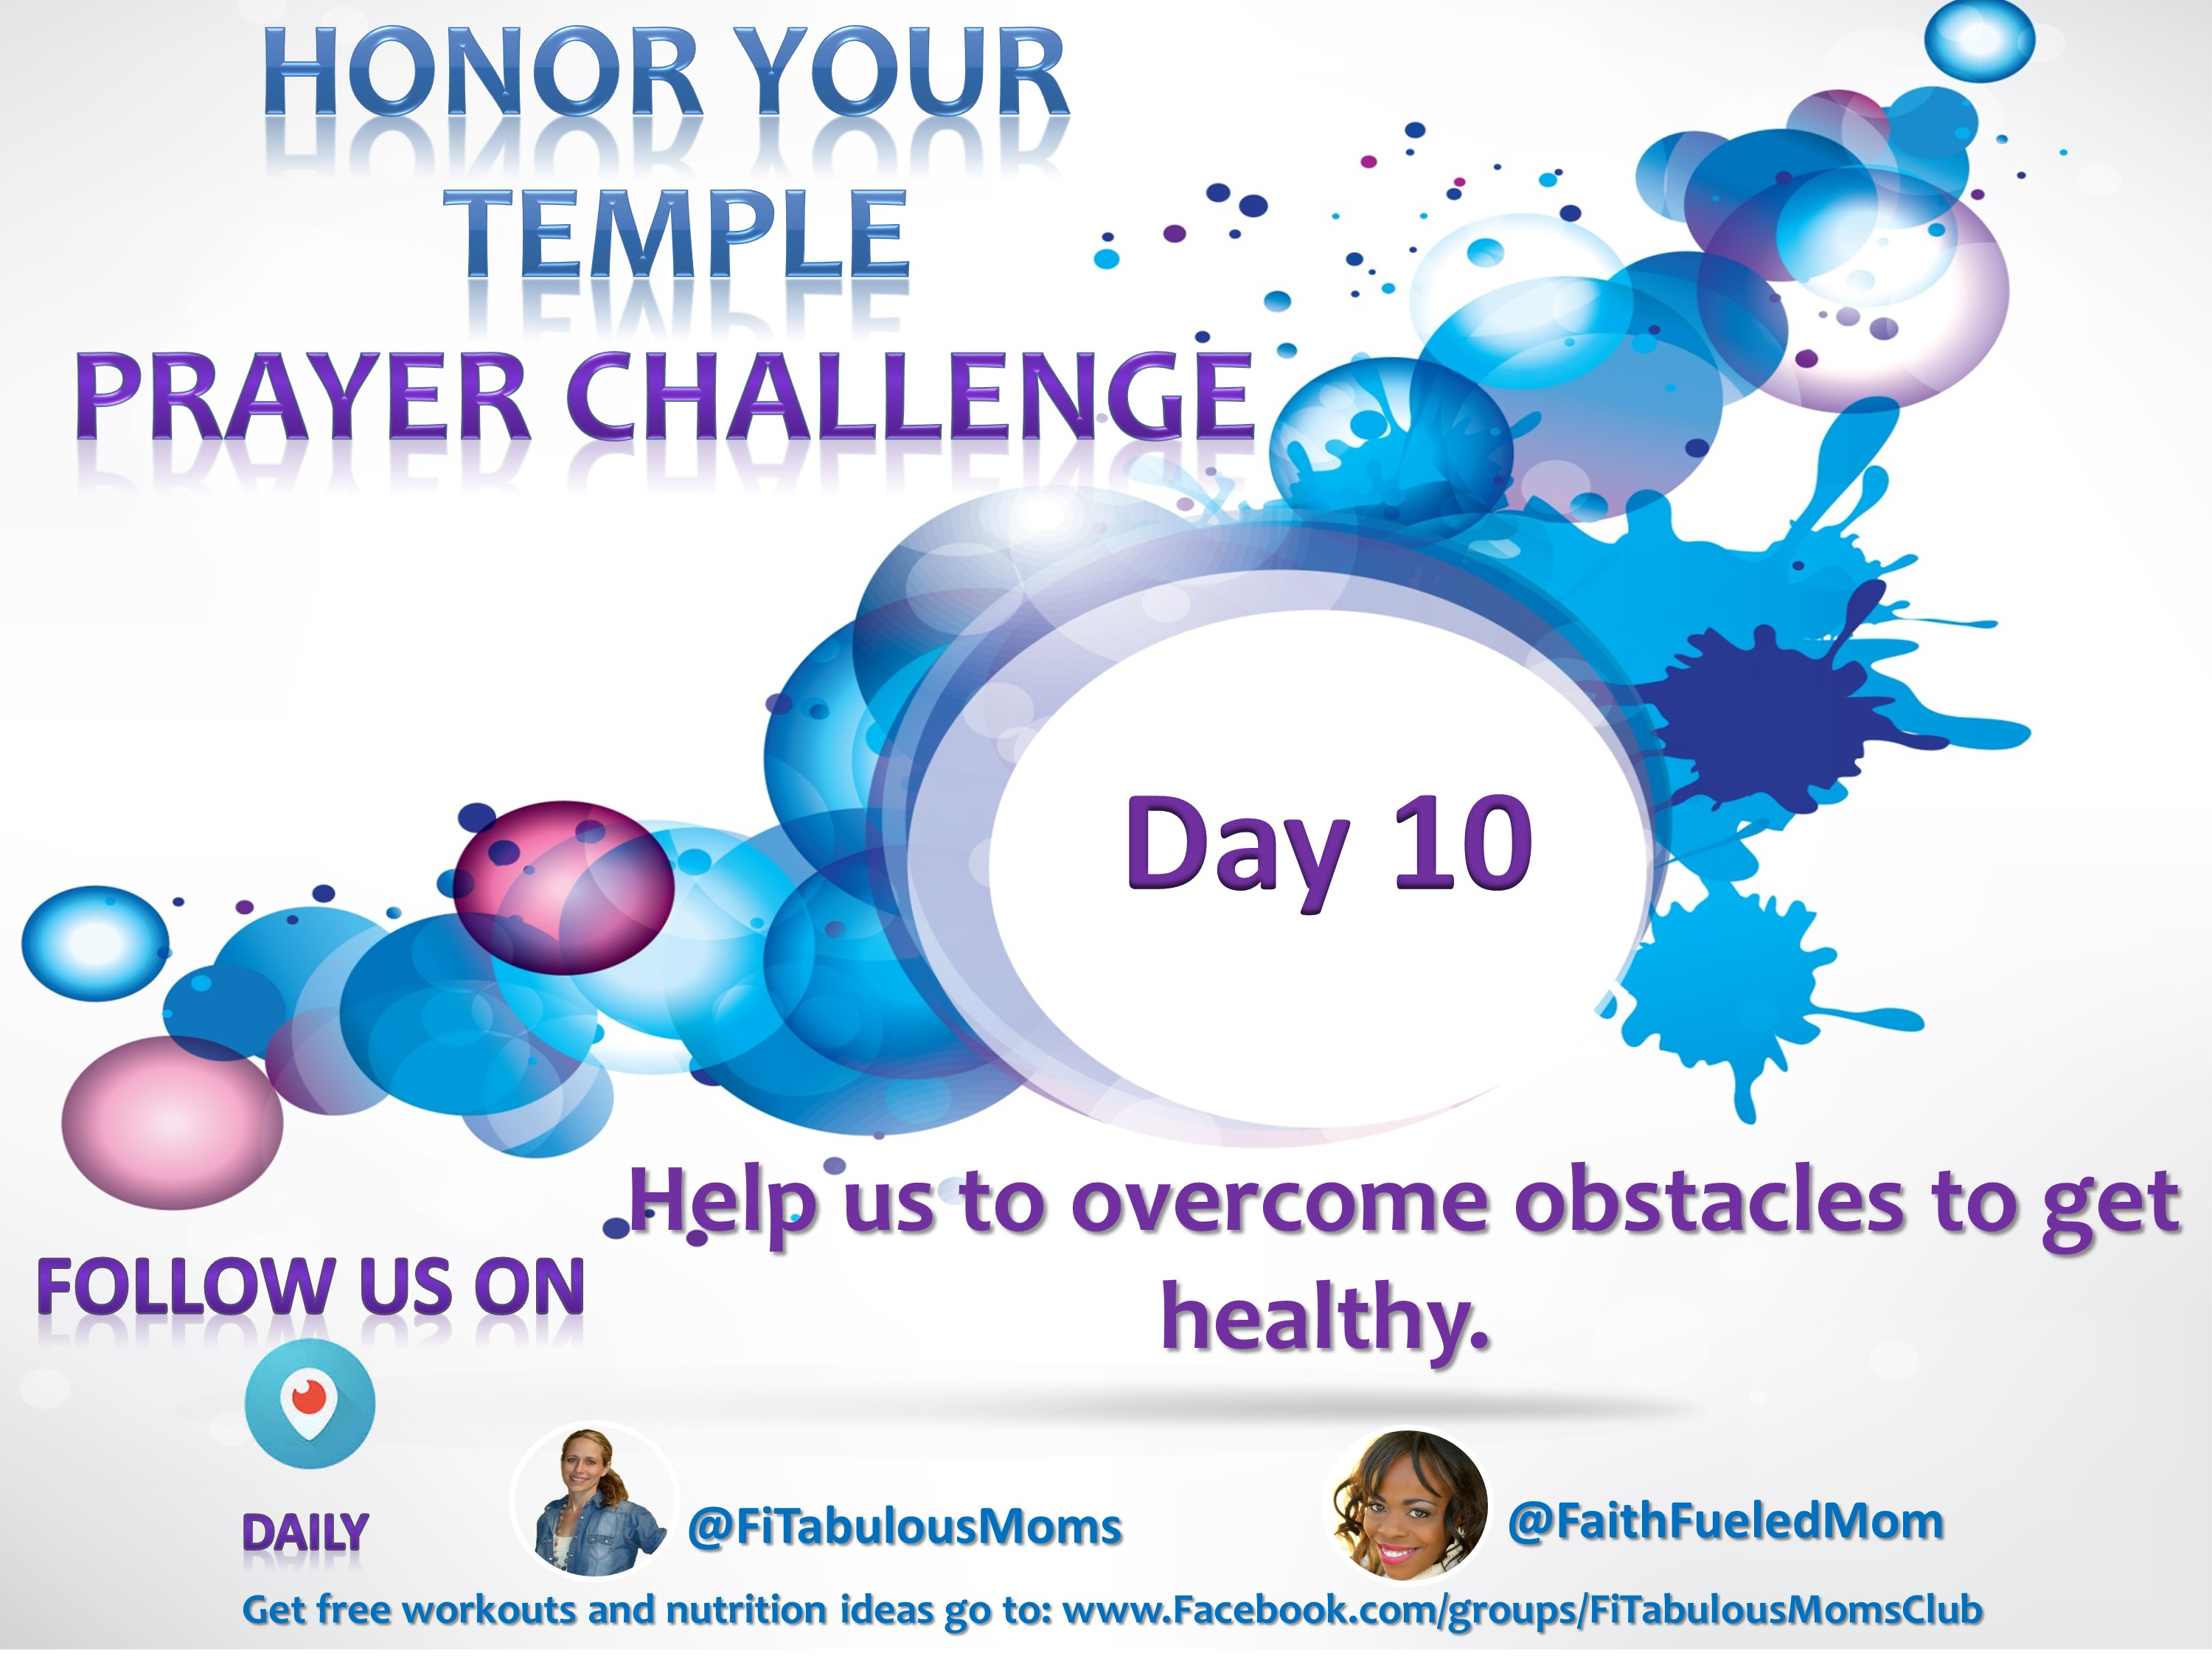 Day 10 Honor Your Temple Prayer Challenge